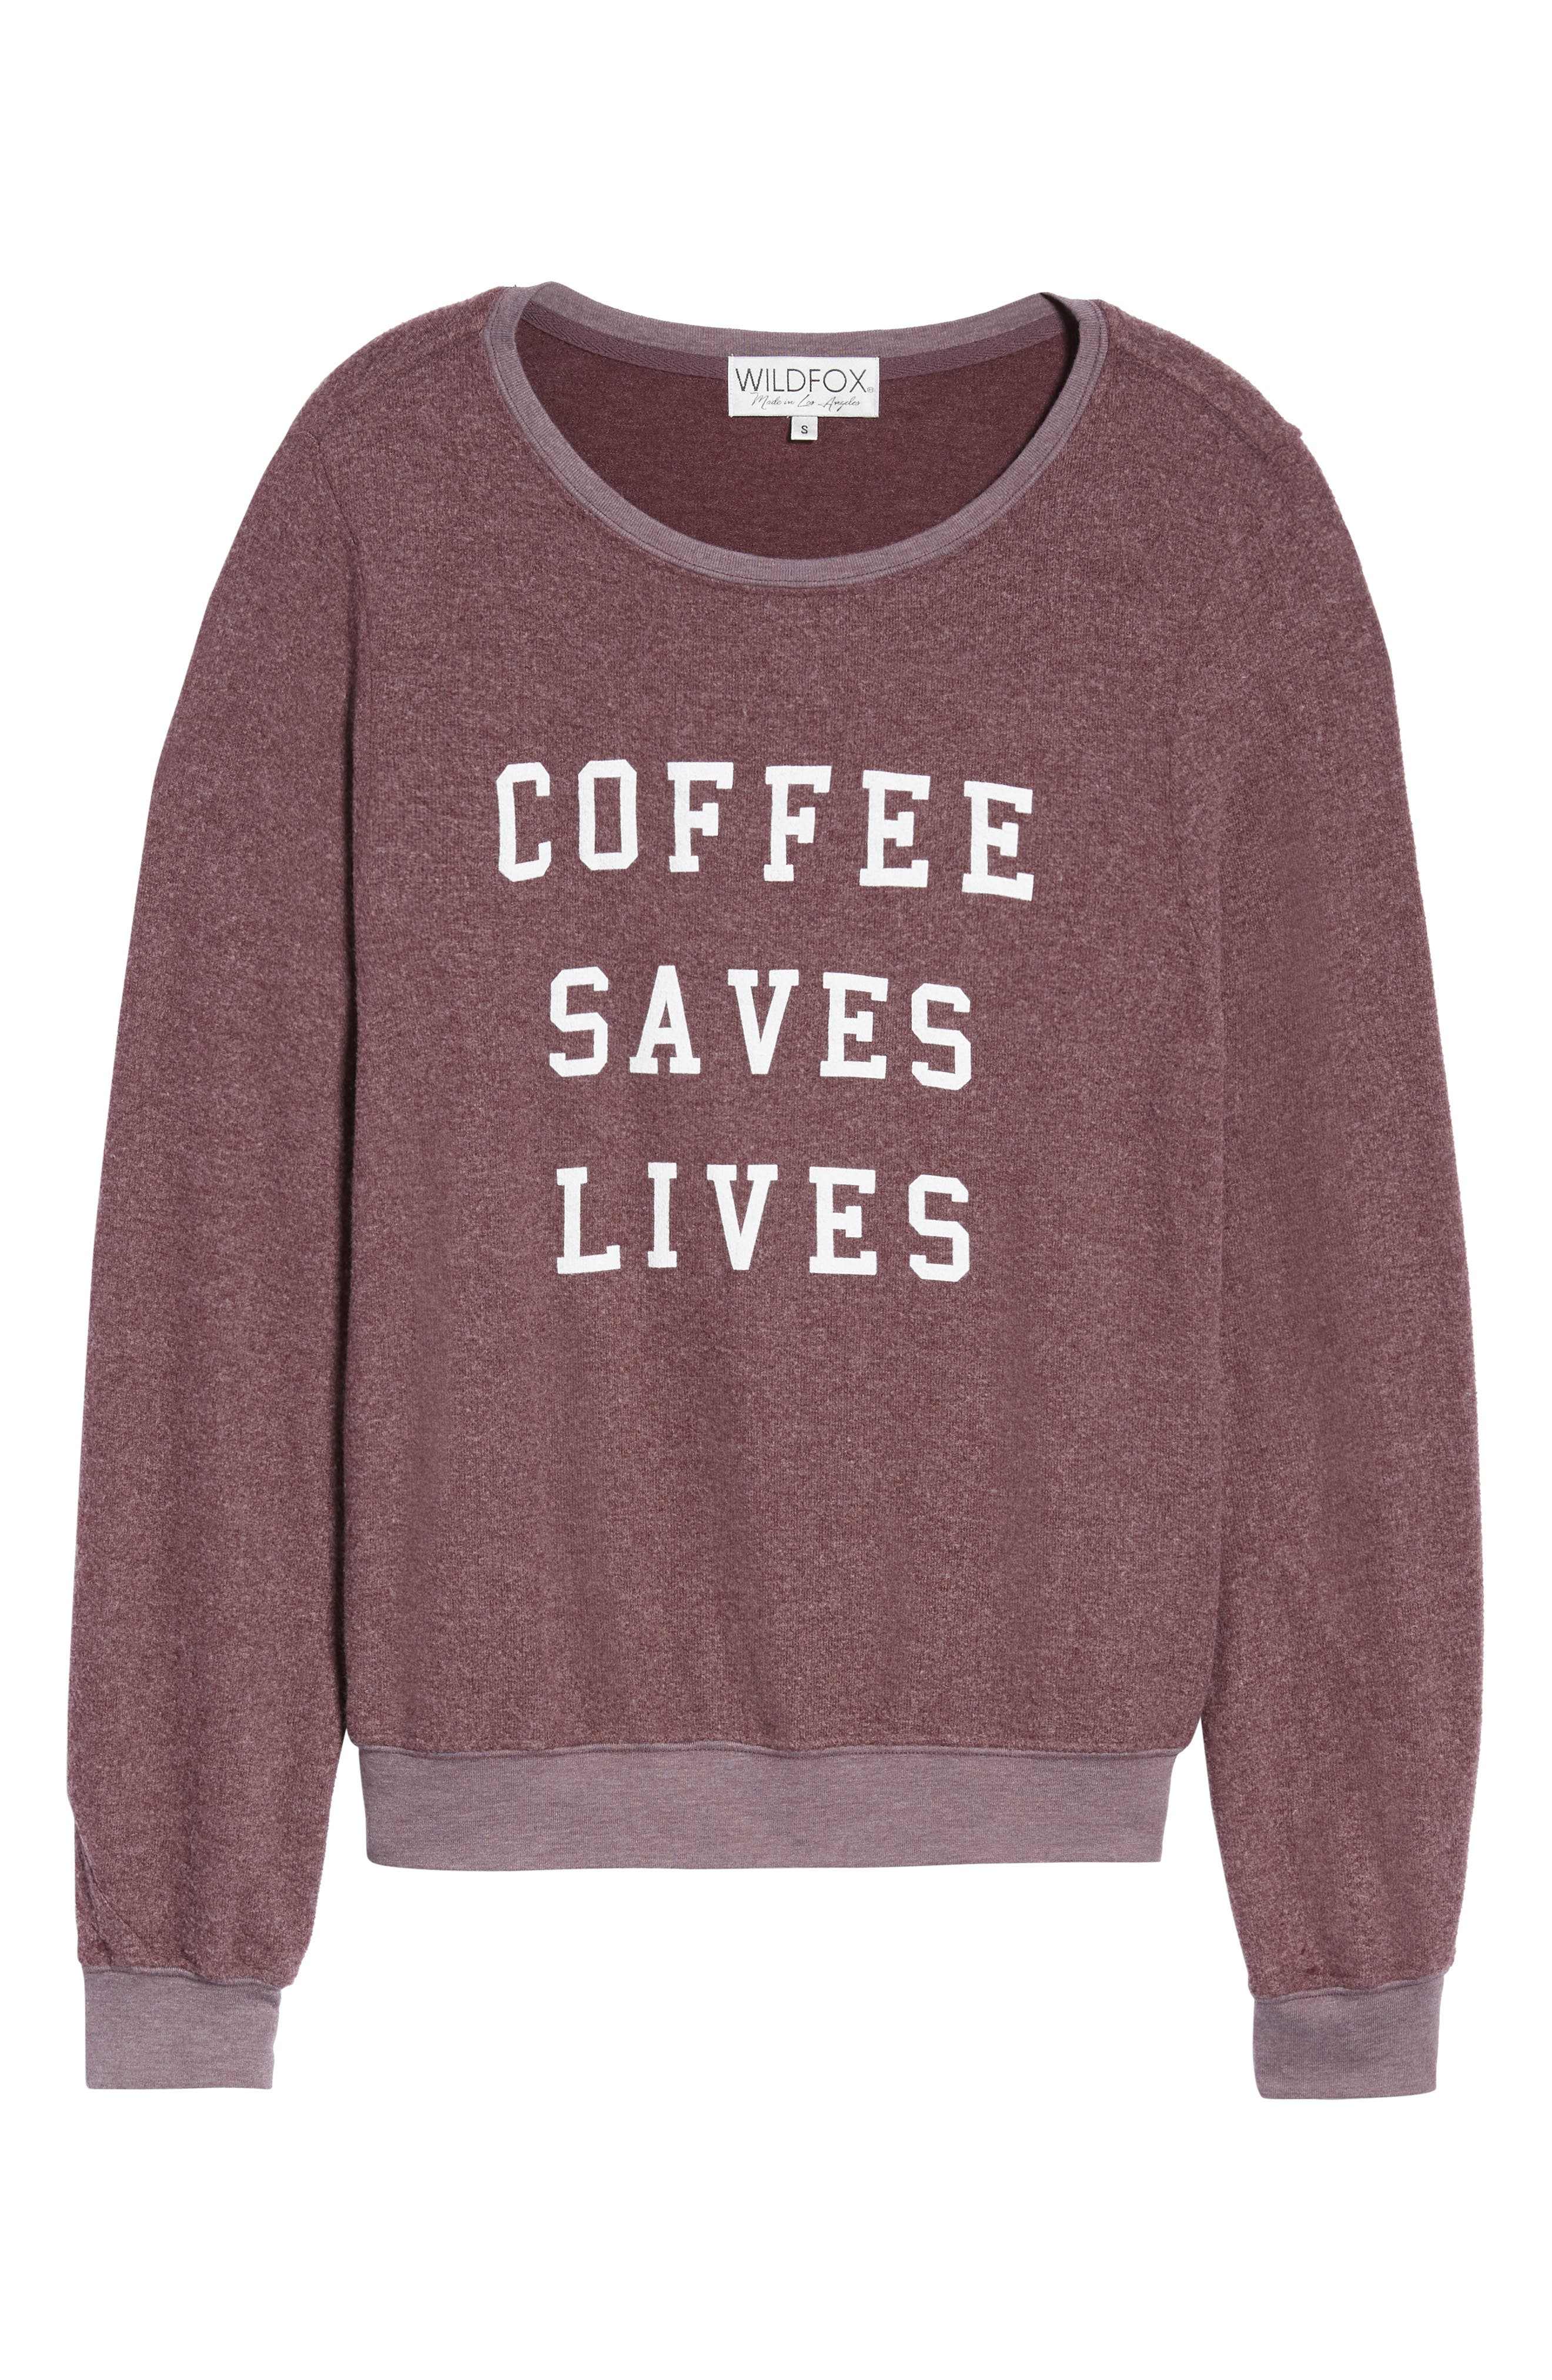 Coffee Saves Lives Baggy Beach Jumper Pullover,                             Alternate thumbnail 6, color,                             CRUSHED BERRY